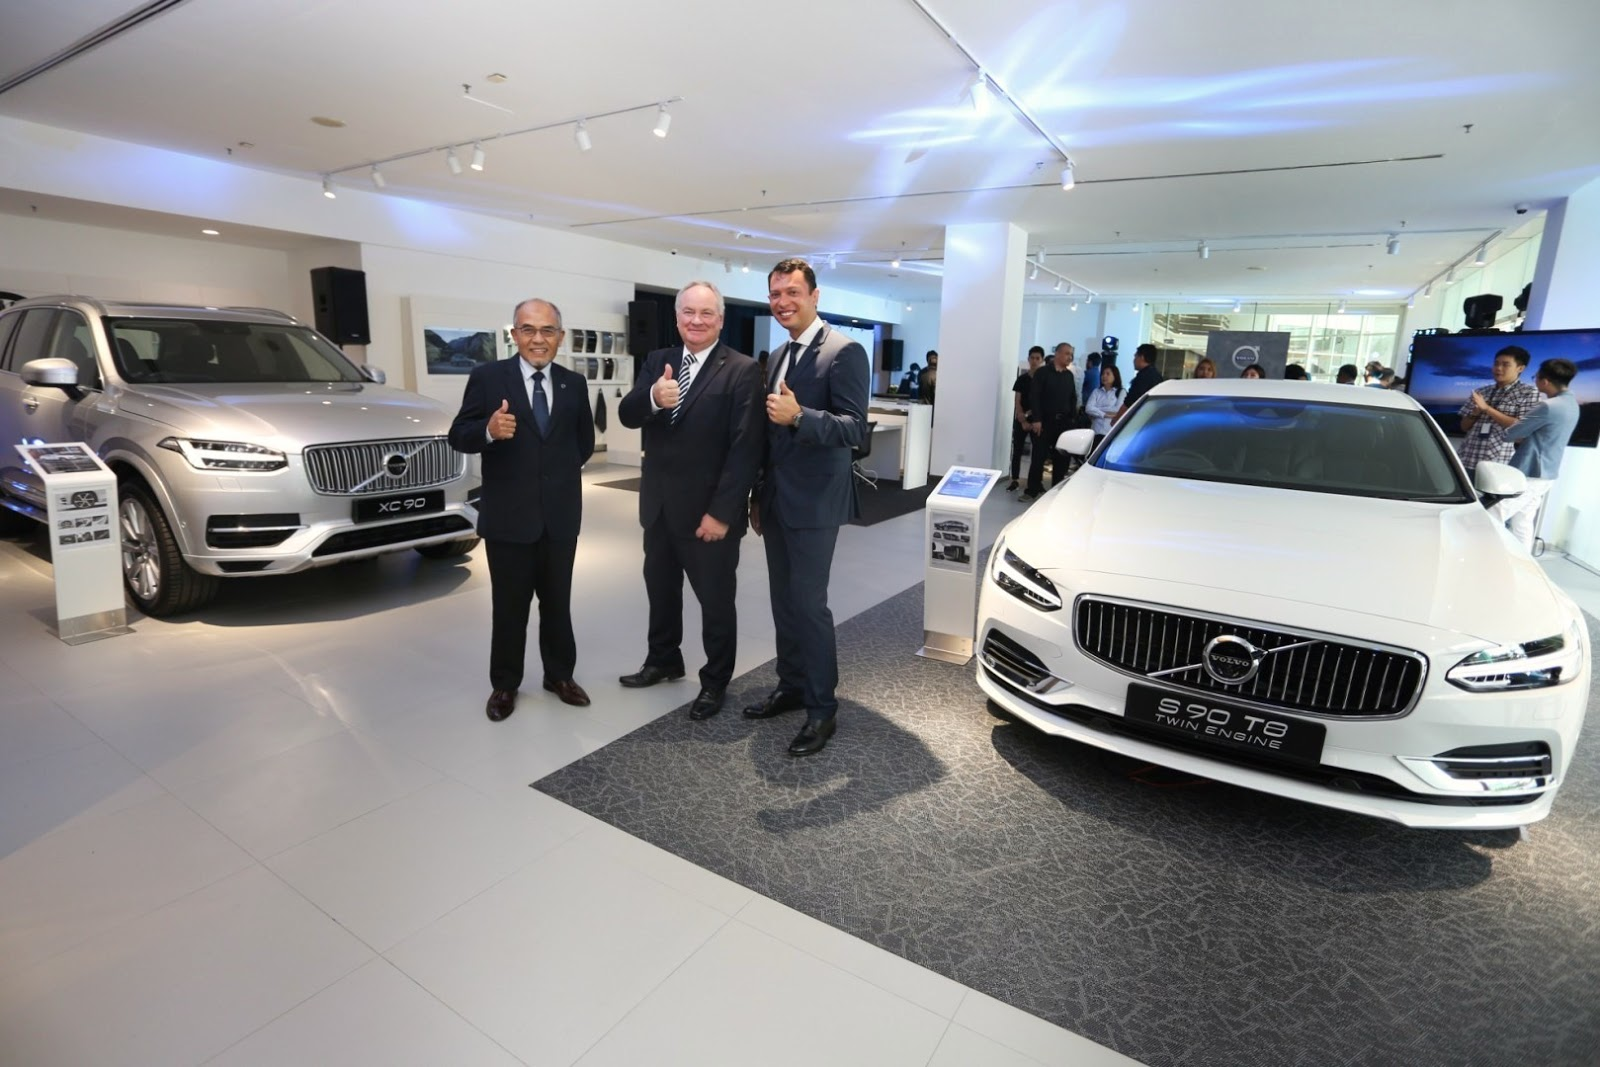 Motoring Malaysia Sisma Auto Opens The Newest Volvo Car Showroom In